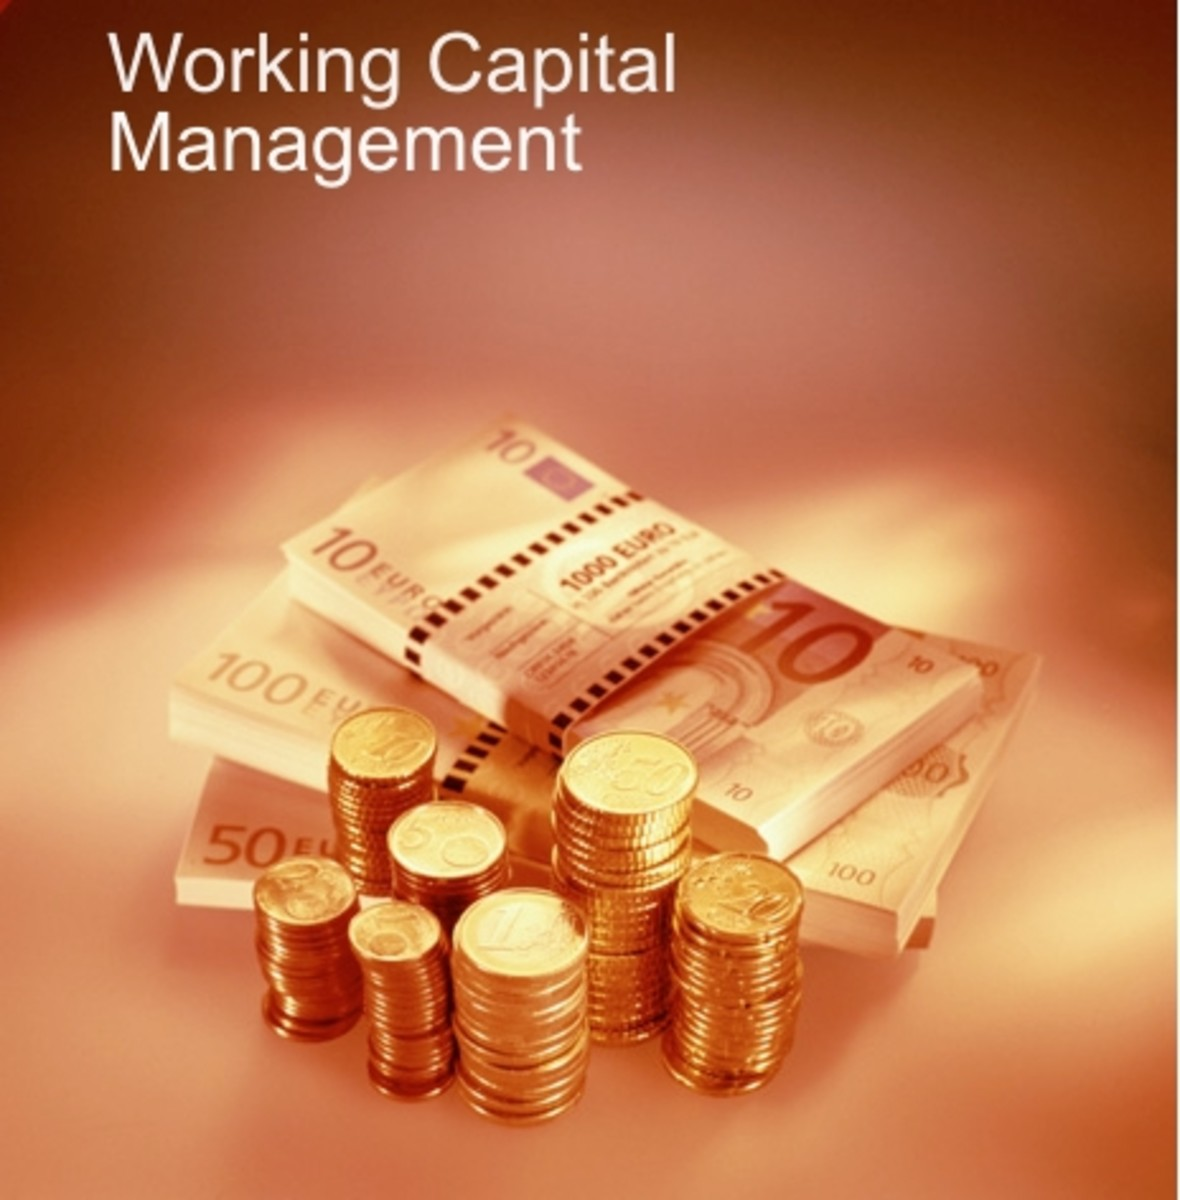 working capital and survival of smes Adb working paper series on regional economic integration no  smes to  survive and eventually grow beyond their sme status in asia, the  the one- sided capital flows from advanced to emerging economies can worsen the  condition of.